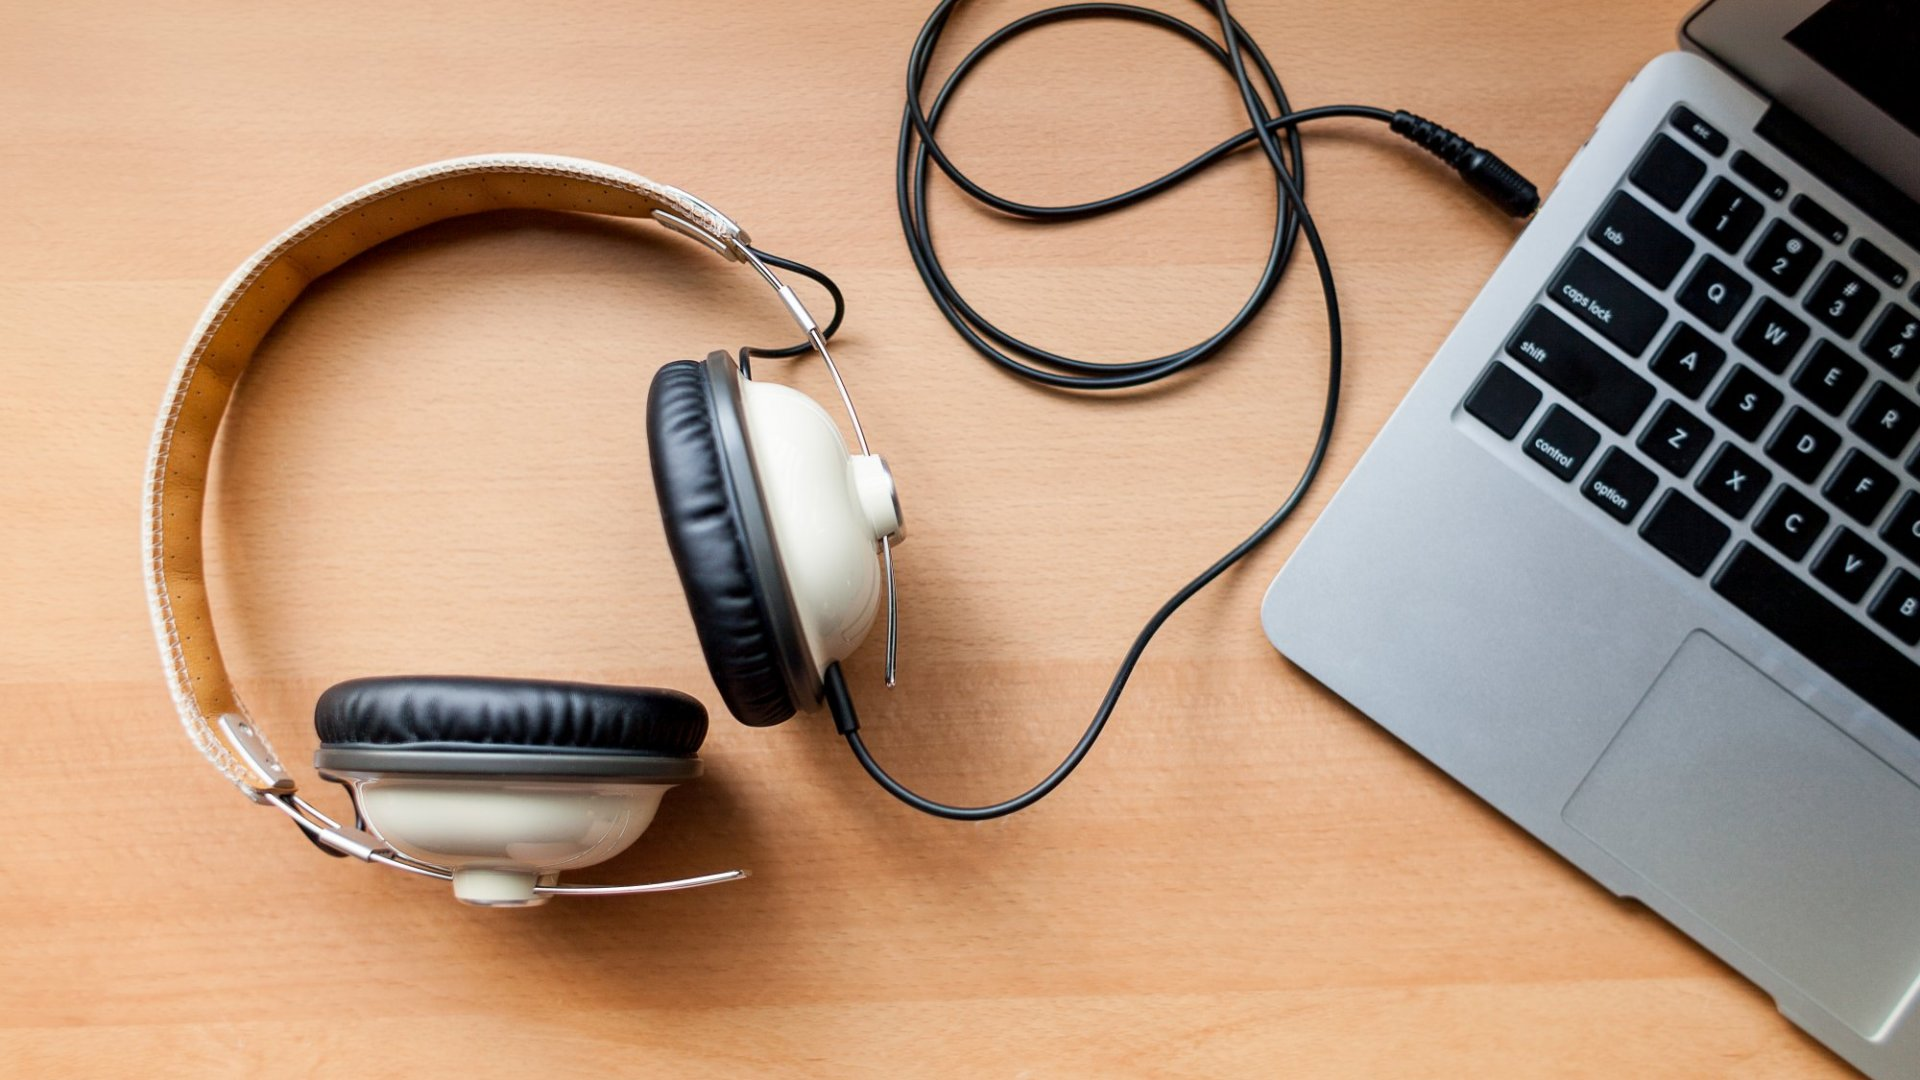 This Is What People Think of You When You Wear Headphones at Work (According to an 800-Person Study)